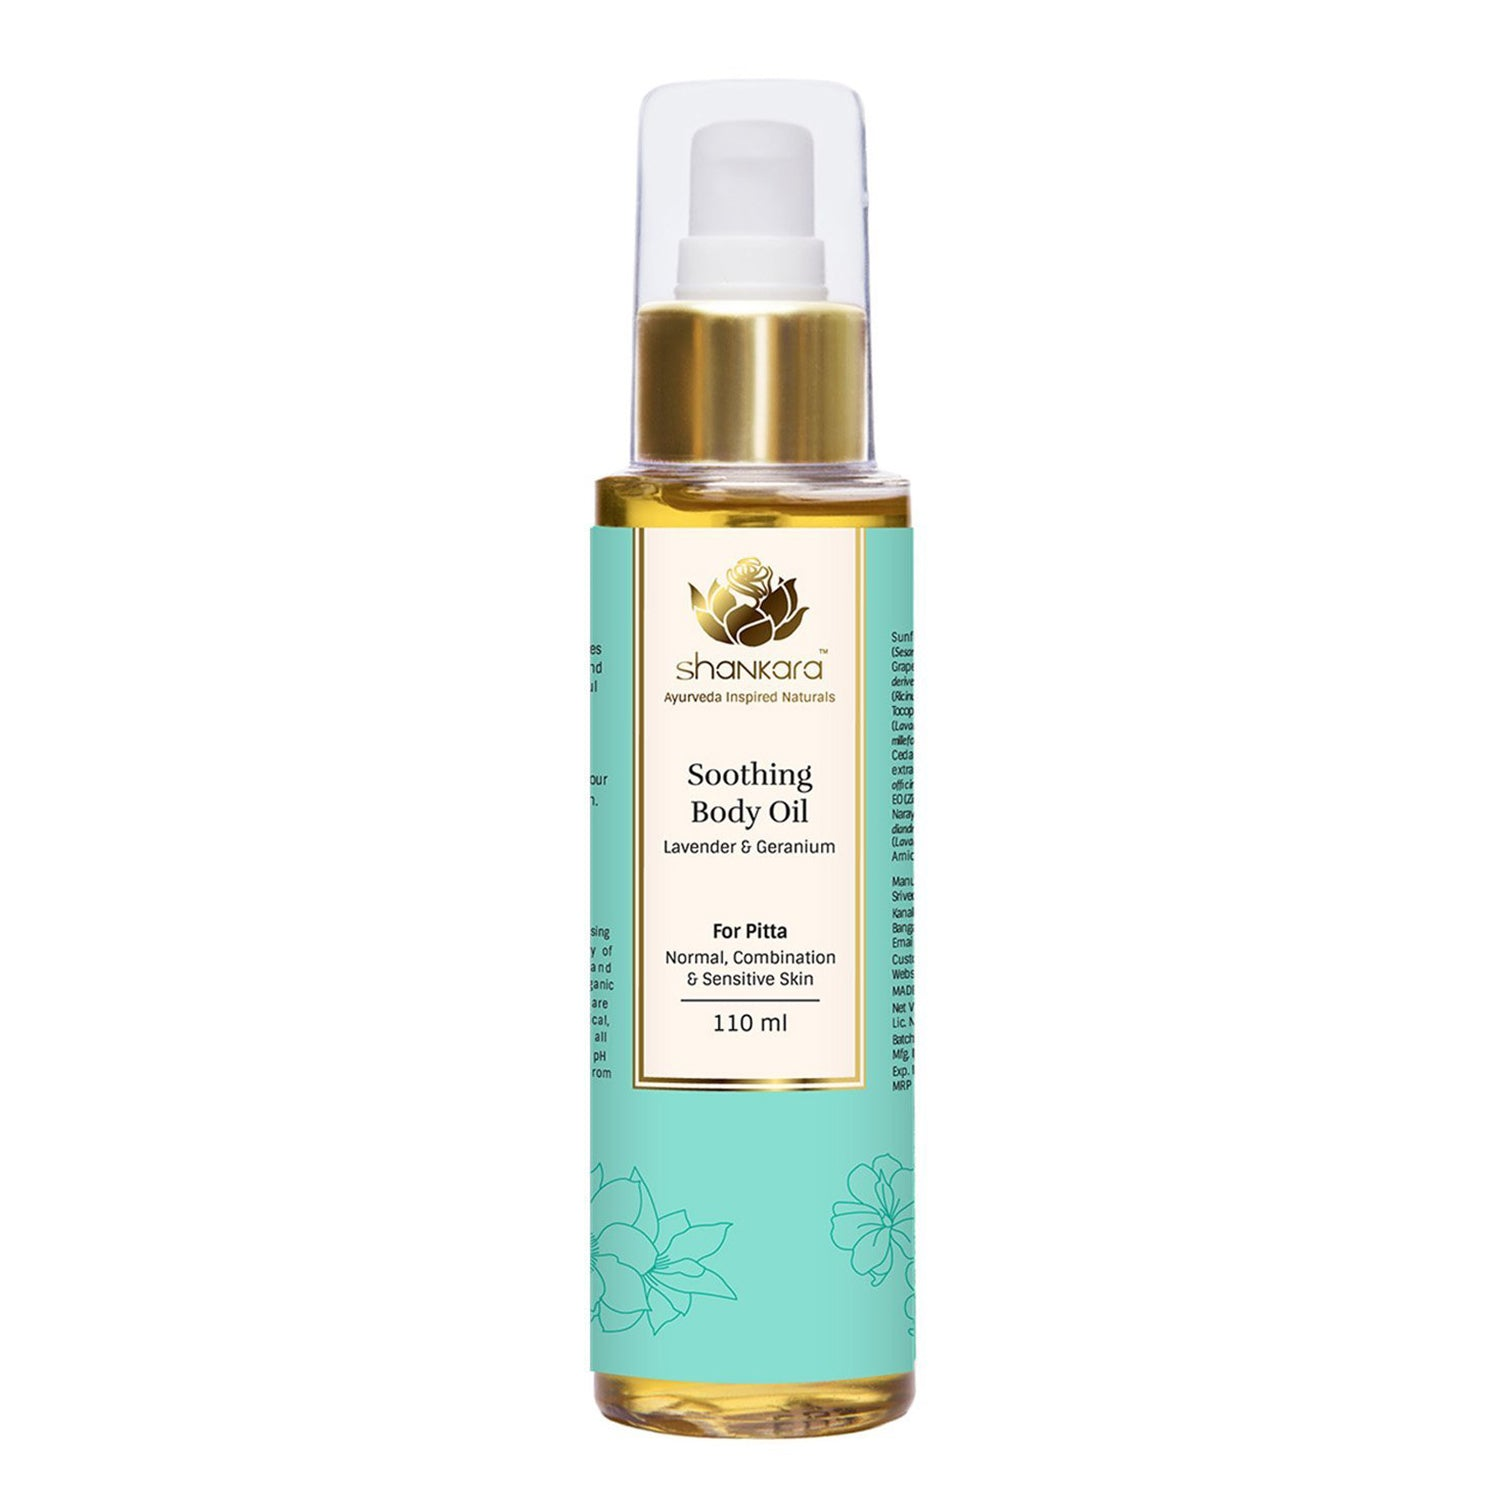 Shankara Soothing Body Oil 110ml